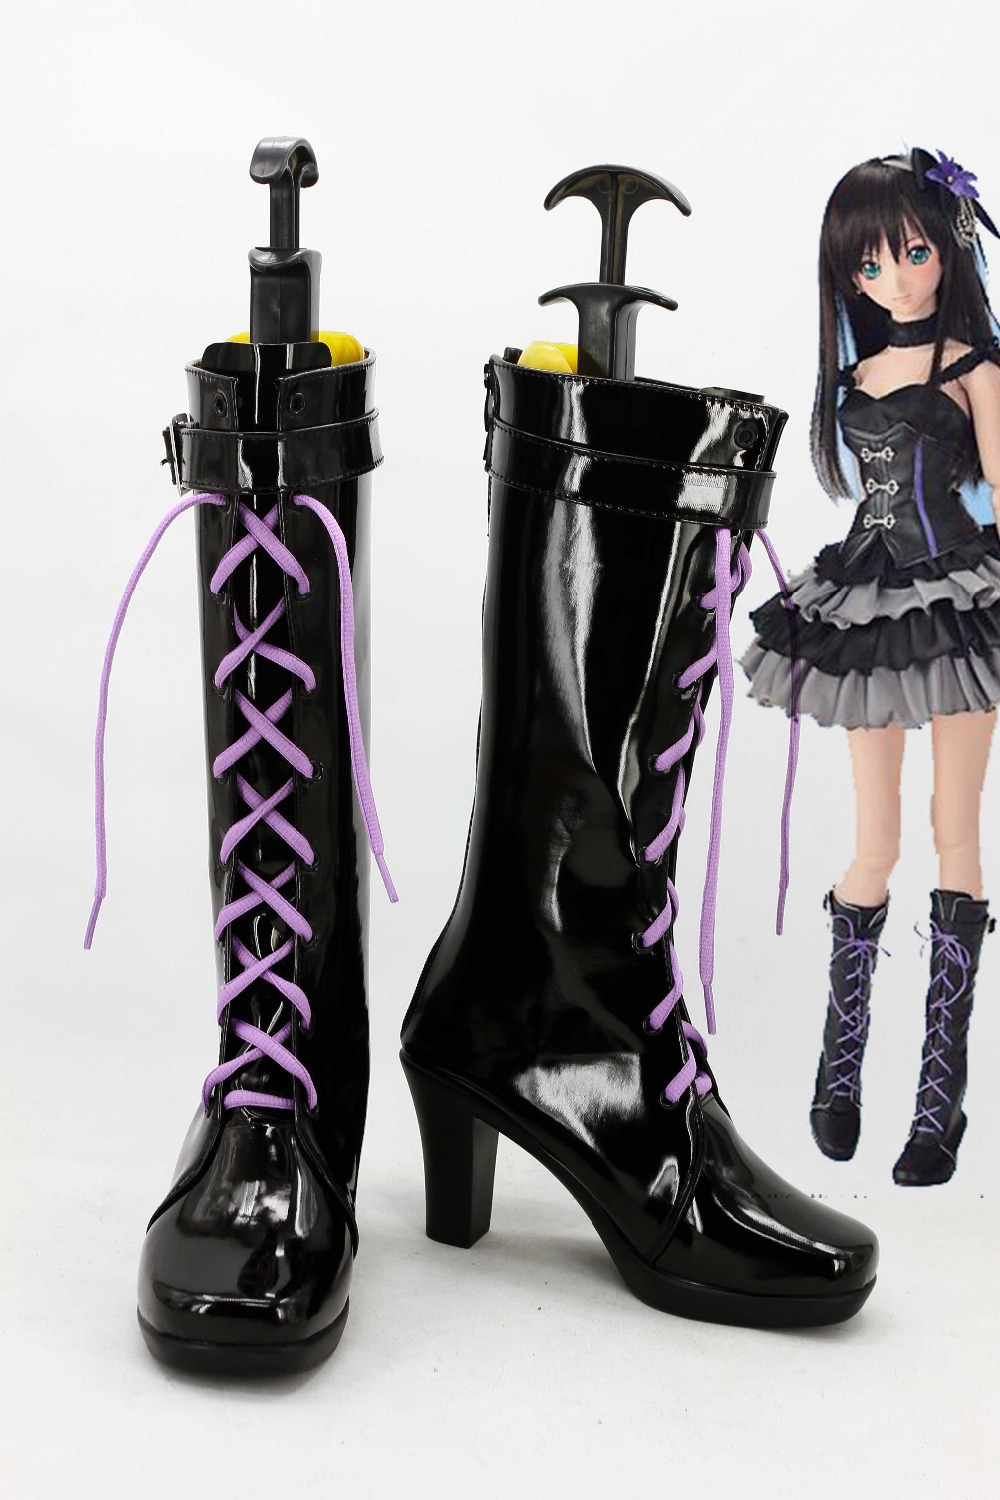 0 female costumes customize cos The iDOLM@STER Cinderella Girls Shibuya Rin COSPLAY customized cos shoes boots costumes